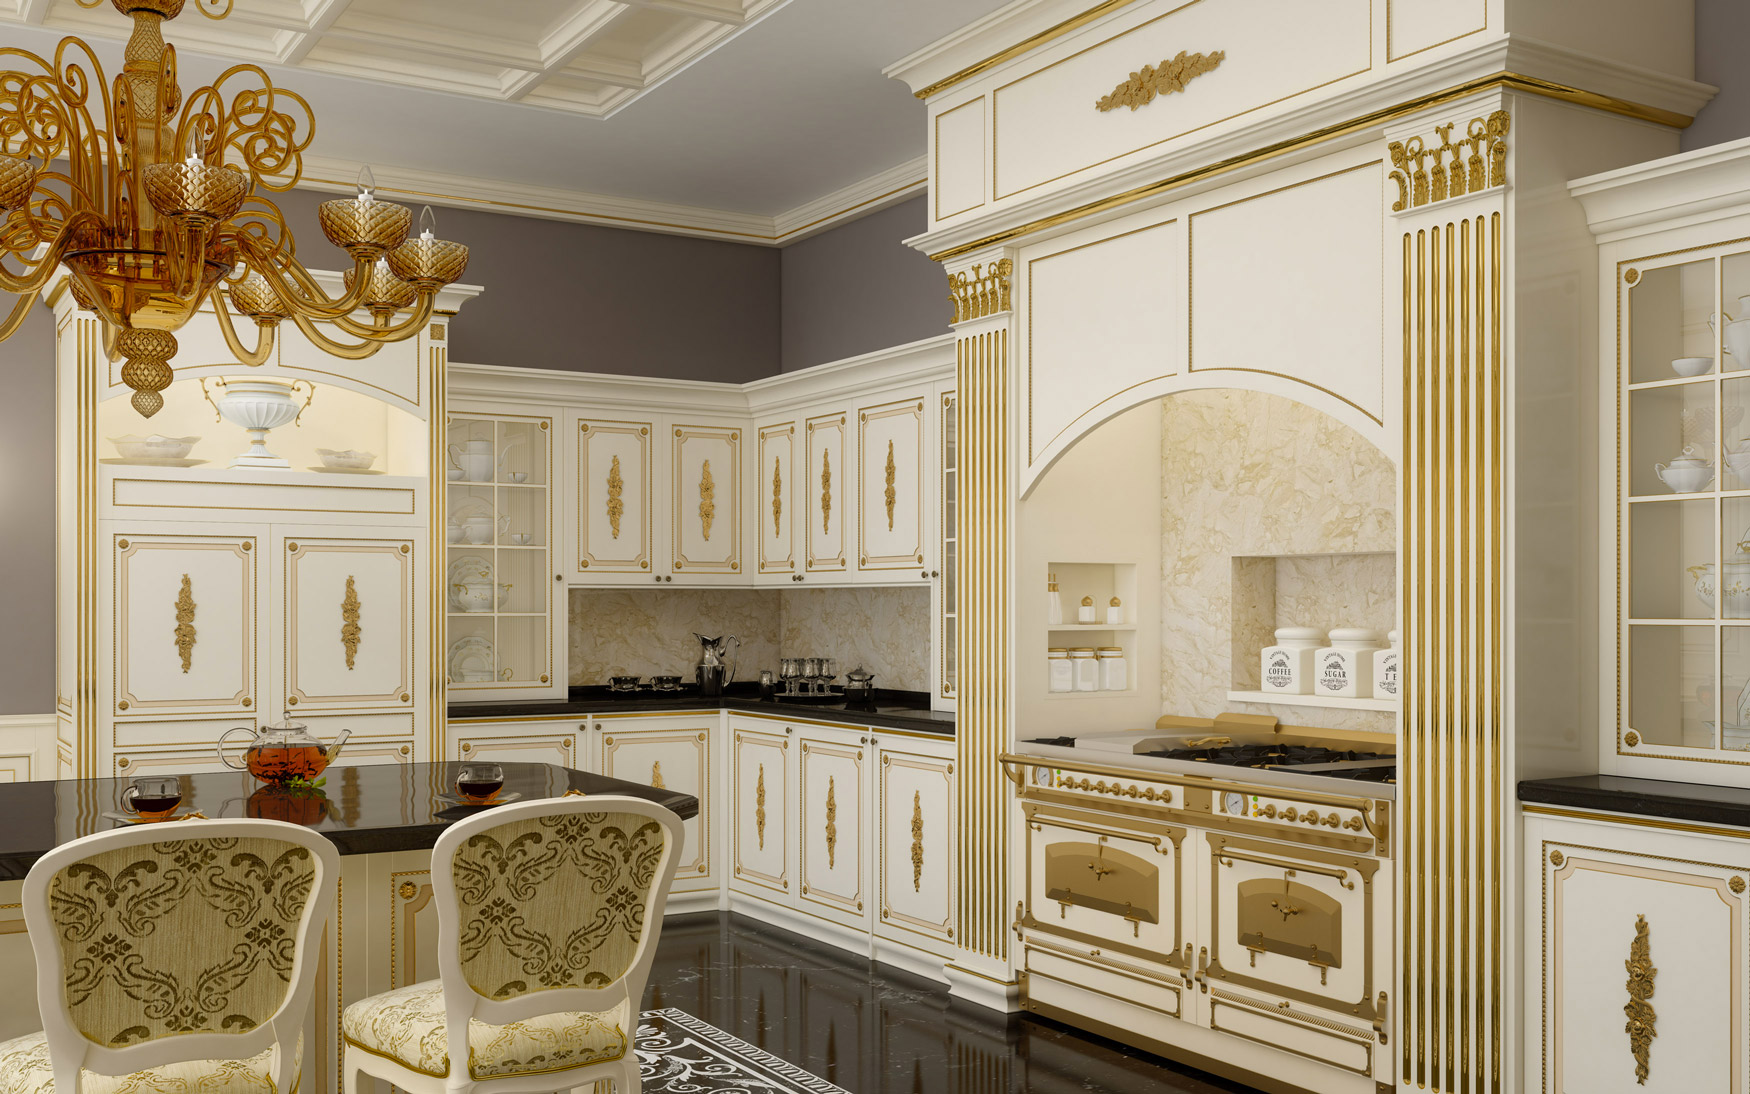 the second platform on which modernity travels is represented by these luxury tailor made kitchens technical equipment which need to offer a comfortable